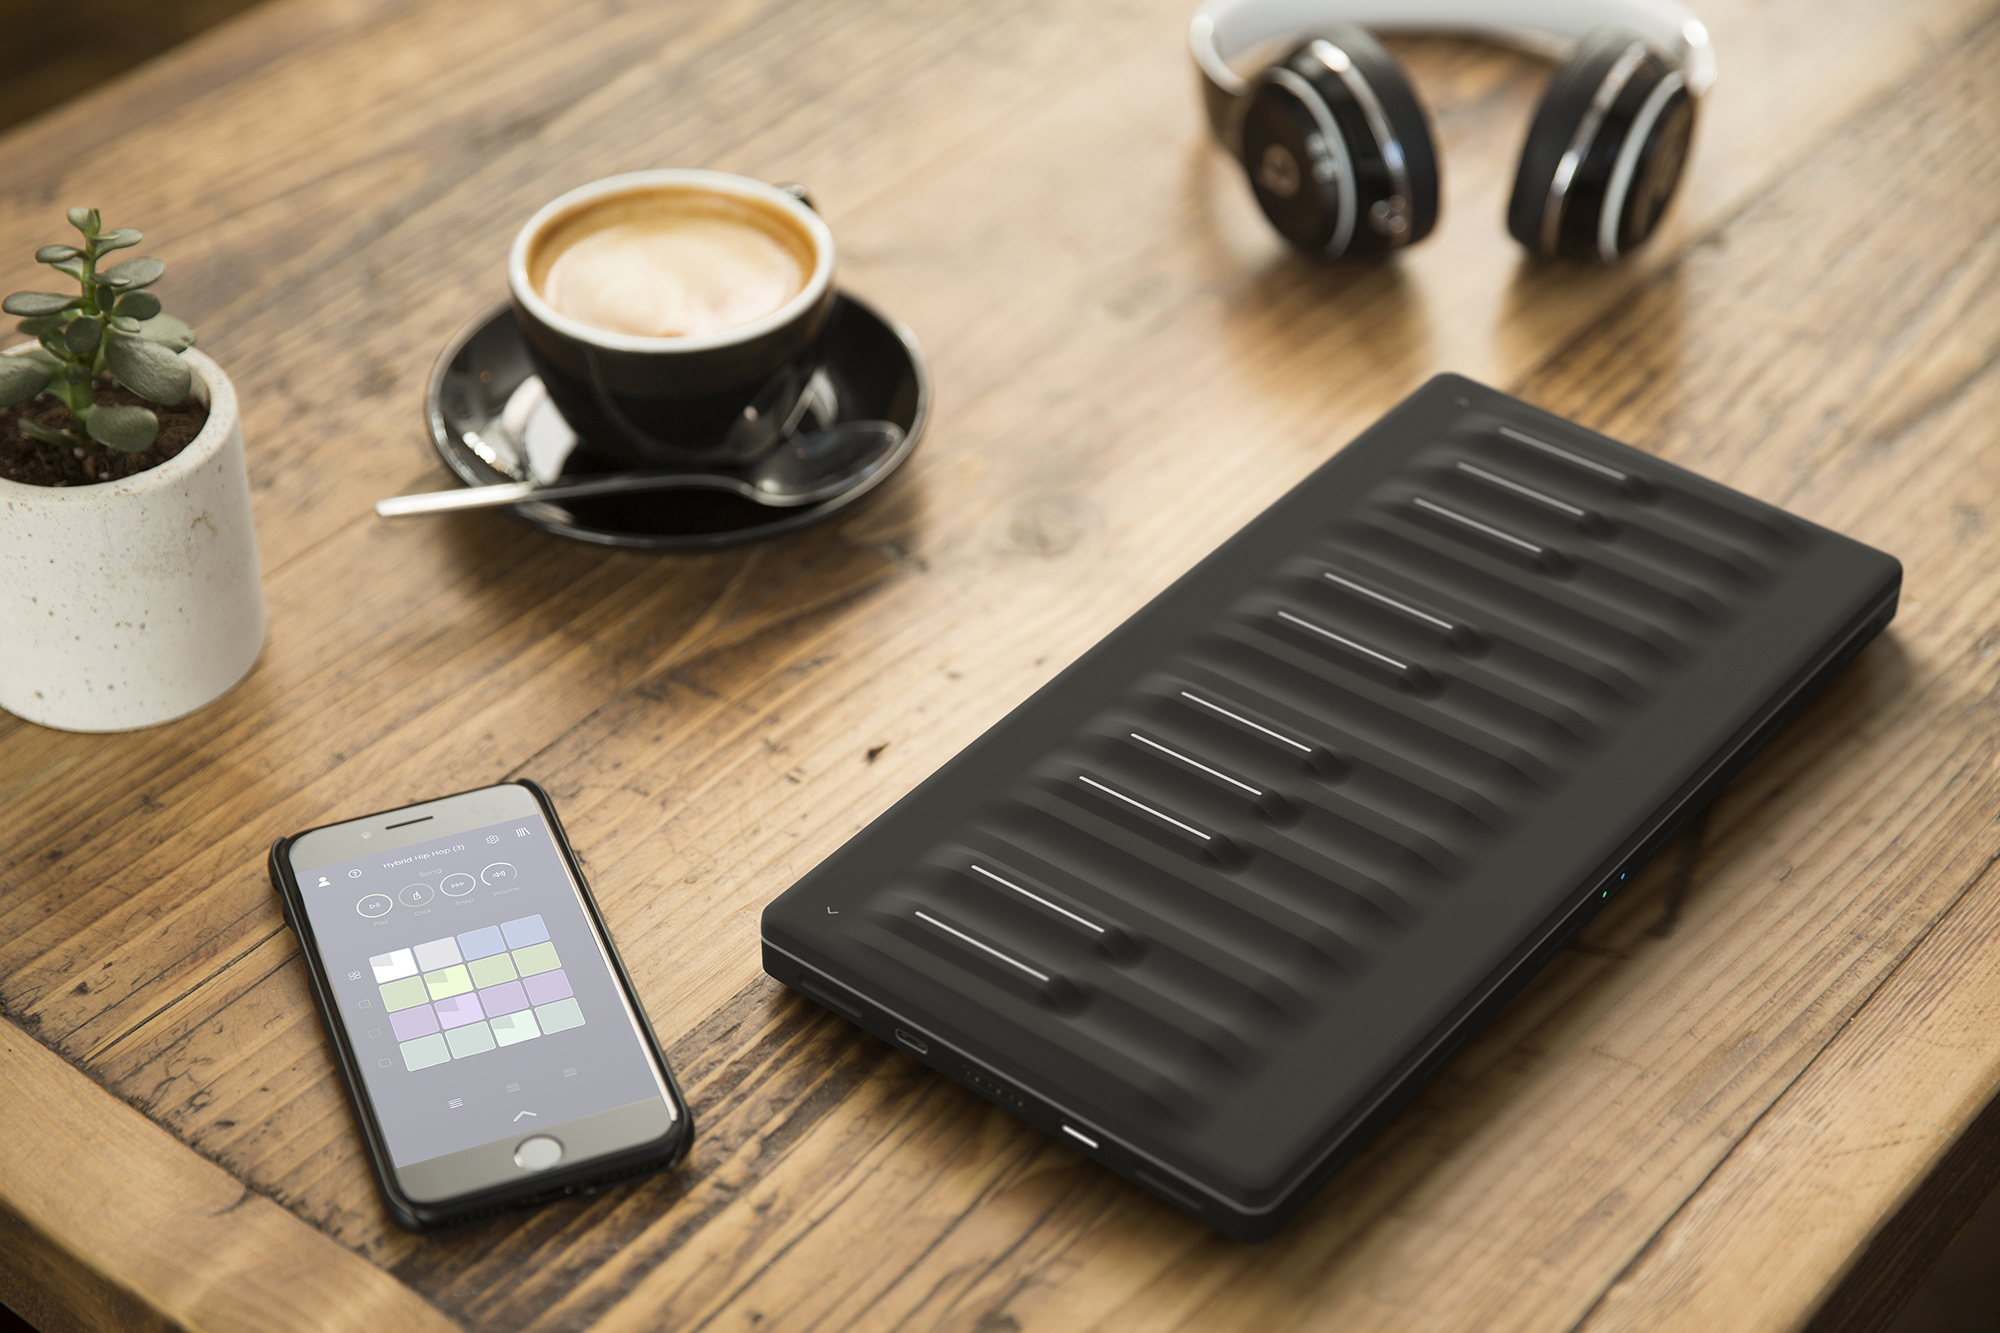 Roli takes aim at expressionists on a budget with the Block controller